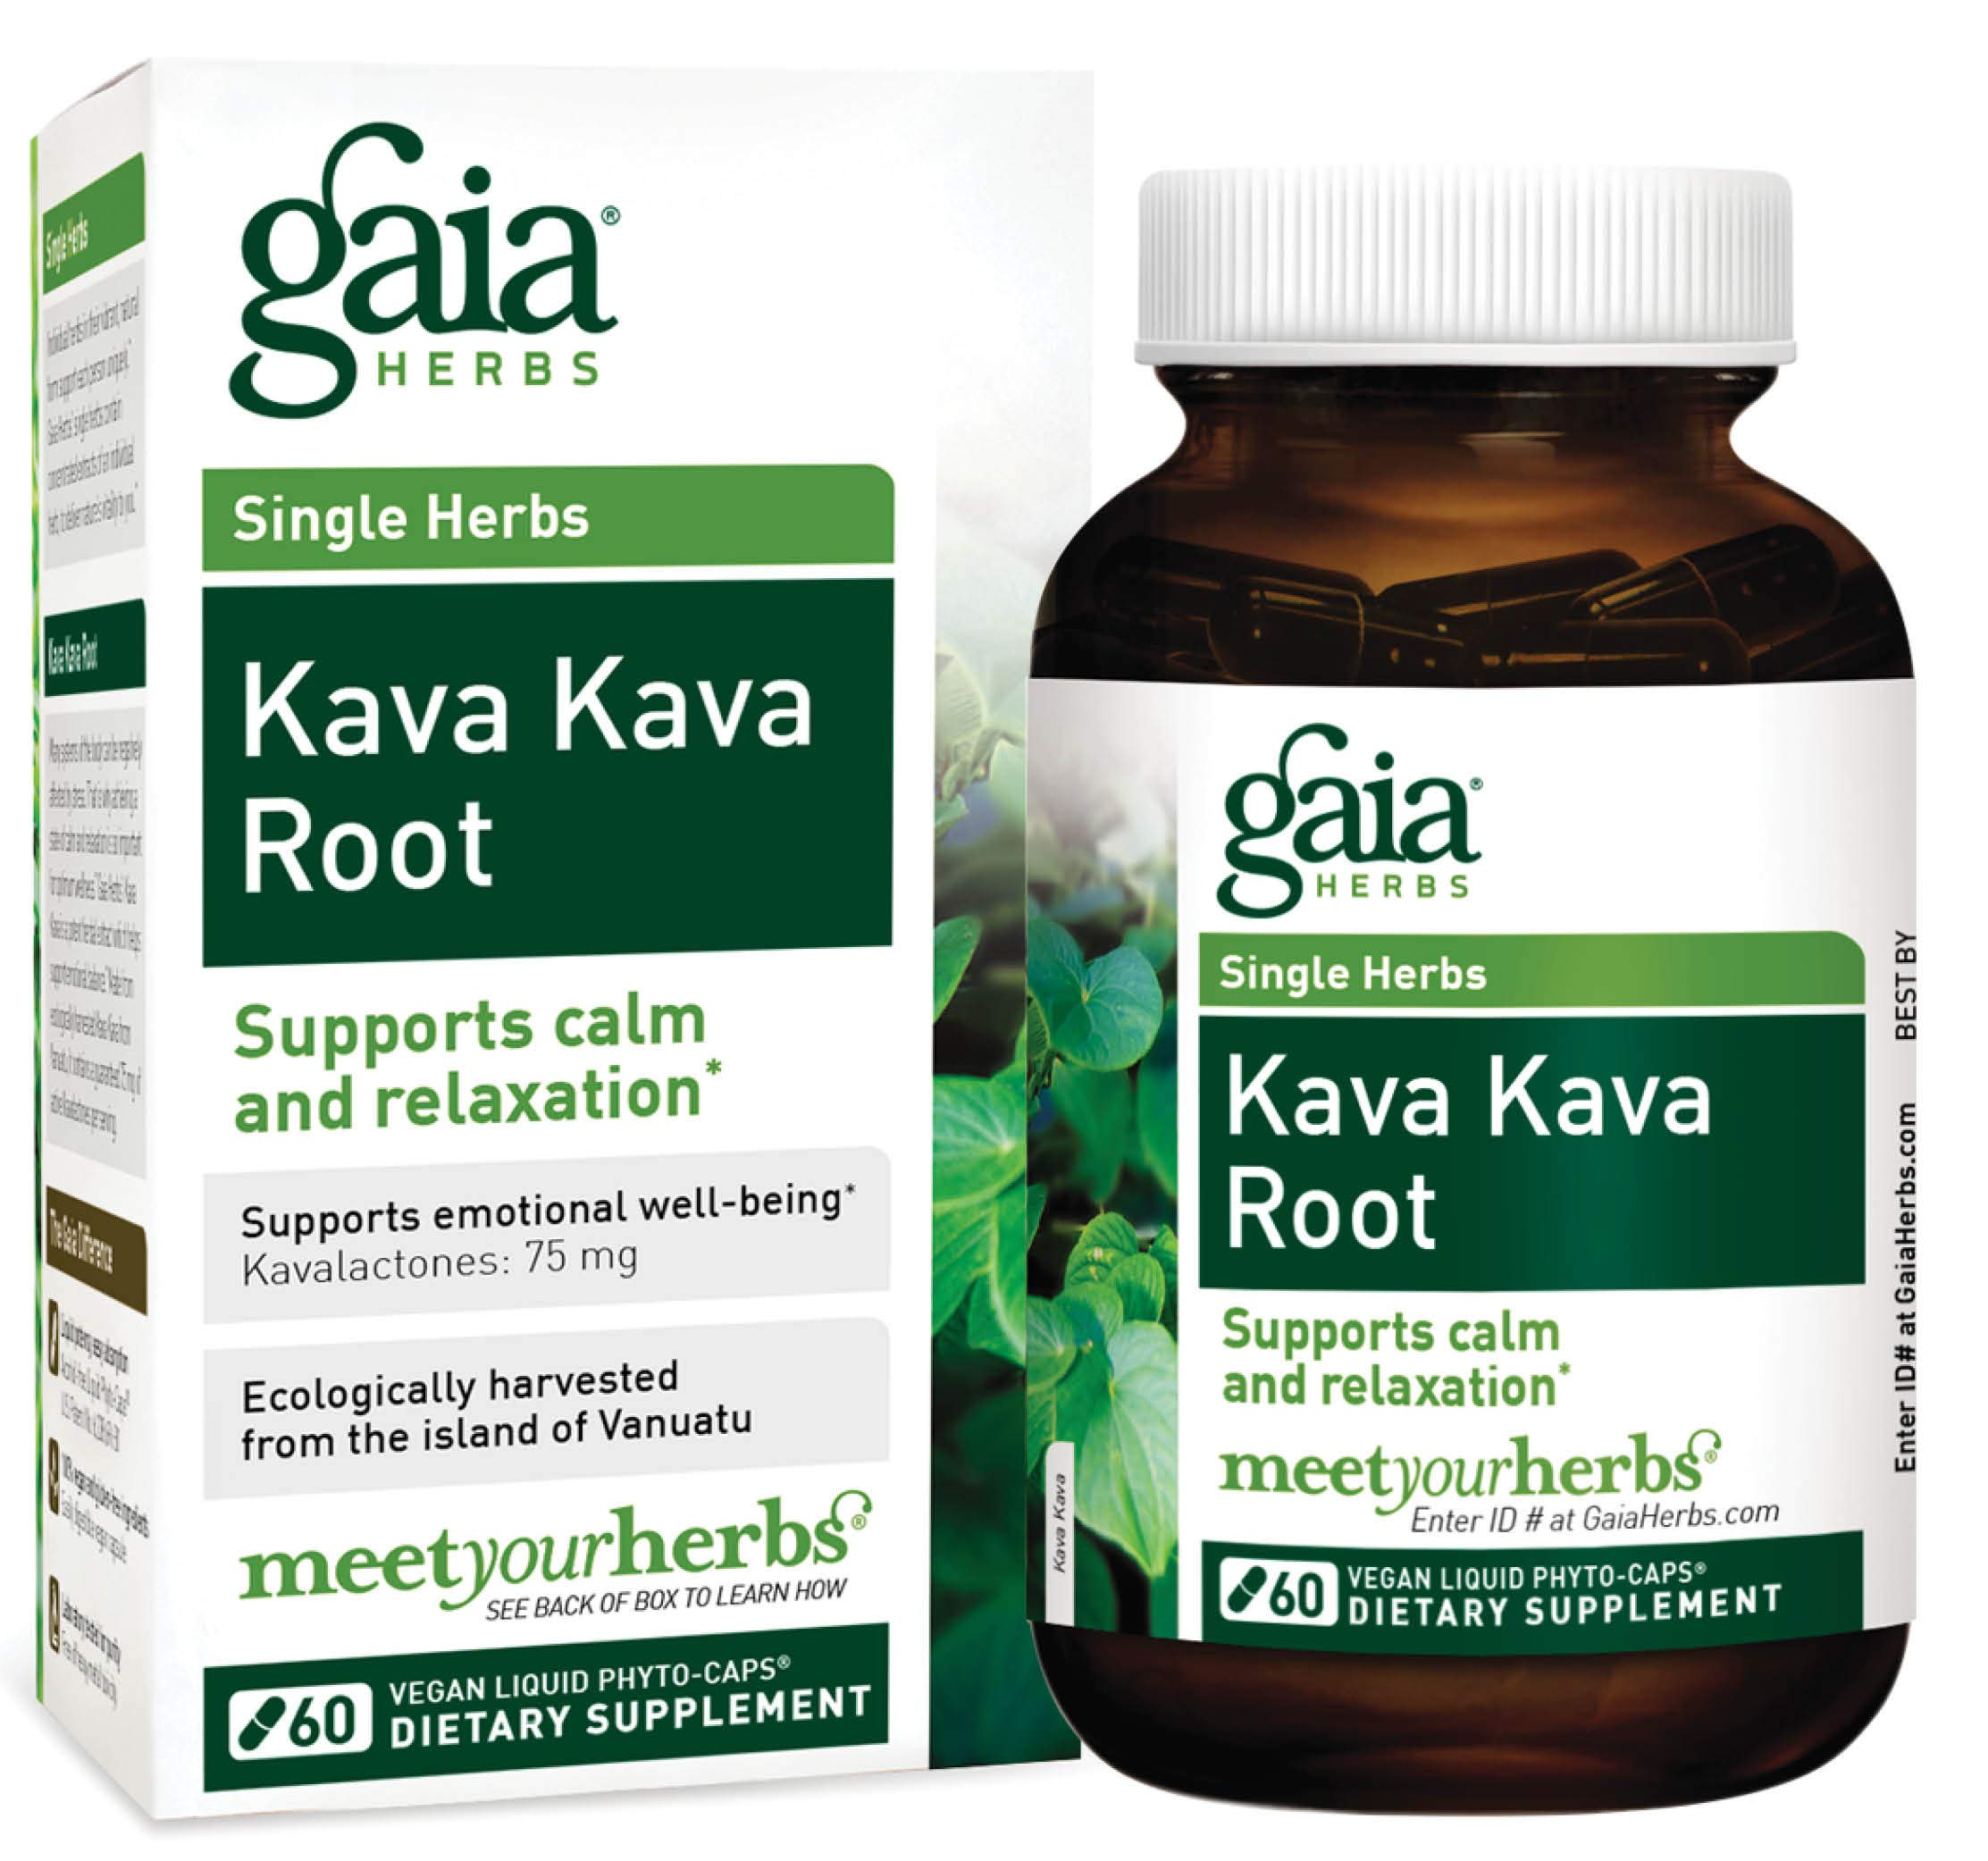 Gaia Herbs Kava Kava Root Vegan Capsules, 60 Count - Supports Emotional Balance, Calm and Relaxation, Ecologically Harvested Kava from Vanuatu, Guaranteed Potency 75mg Active Kavalactones